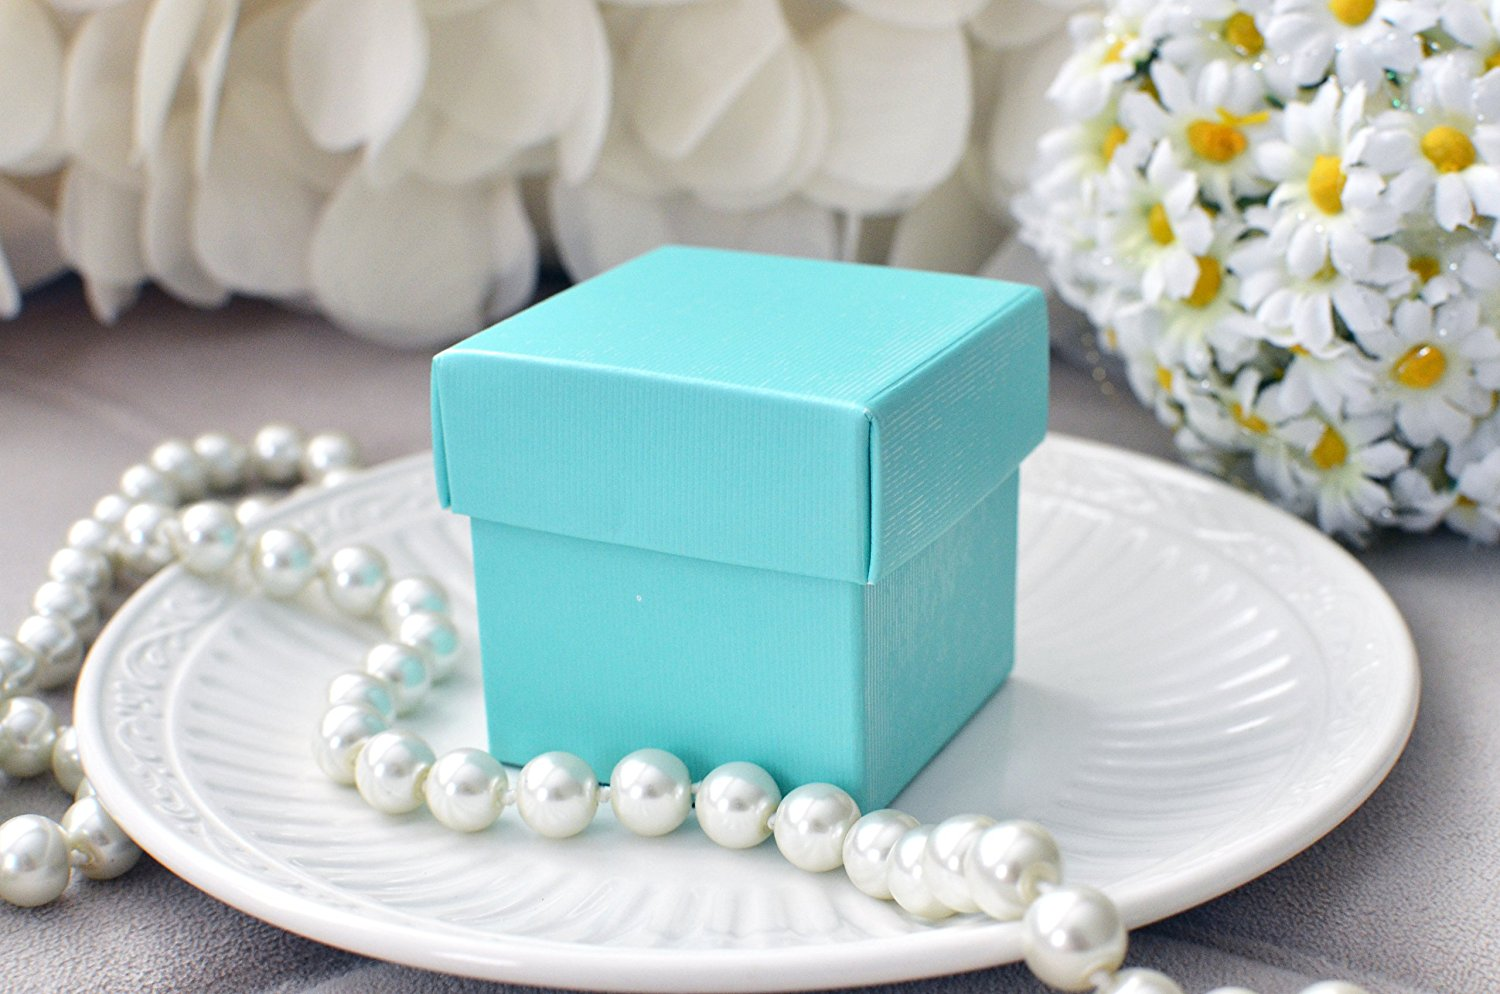 Celebrate It Occasions Favor Boxes With Lids Instructions : Mini square x wedding bridal shower favor box with lid